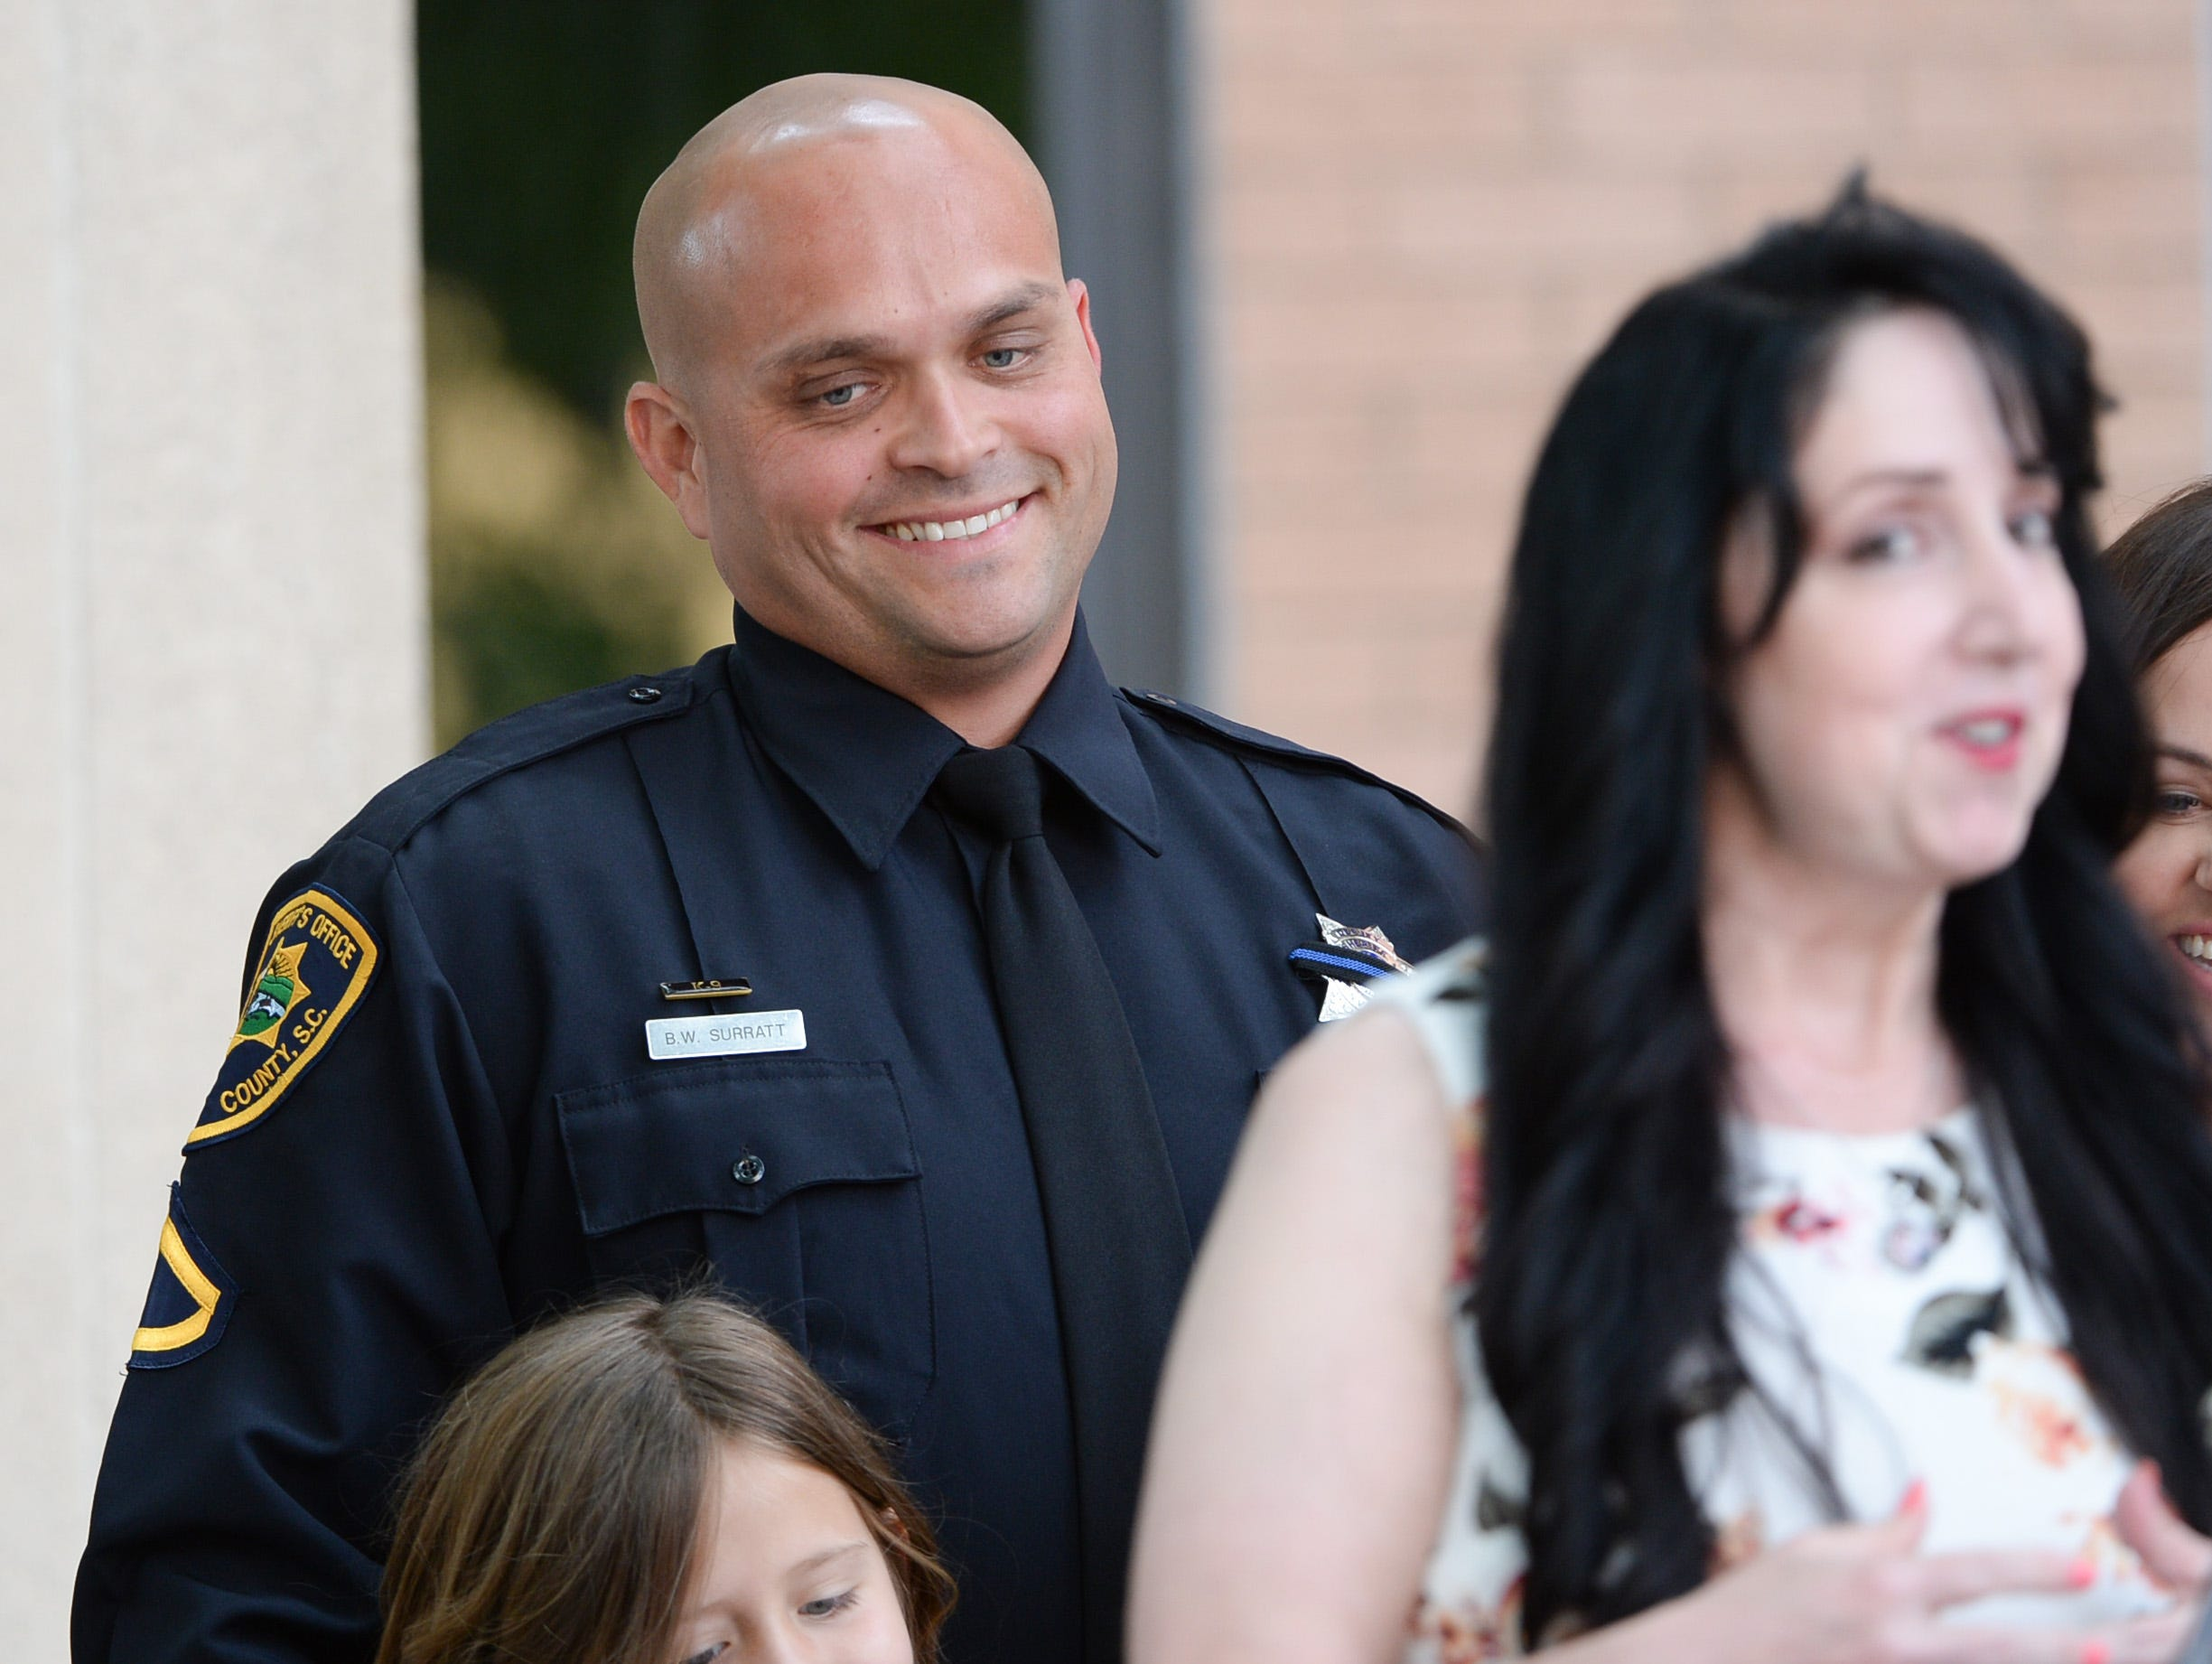 Brandon Surratt, left, of the Greenville Sheriff's Office, stands near artist Loreena Pantaleone, of Pennsylvania, who presented him a painting of Hyco, during the 2019 Peace Officer Memorial Service Wednesday May 15, 2019, in front of the Anderson County courthouse. People attended to help honor the lives of officers lost in the line of duty. Surratt, a former Anderson County Sheriff Deputy who lost his K-9 Hyco in the line of duty in 2015, spoke about serving as an officer.